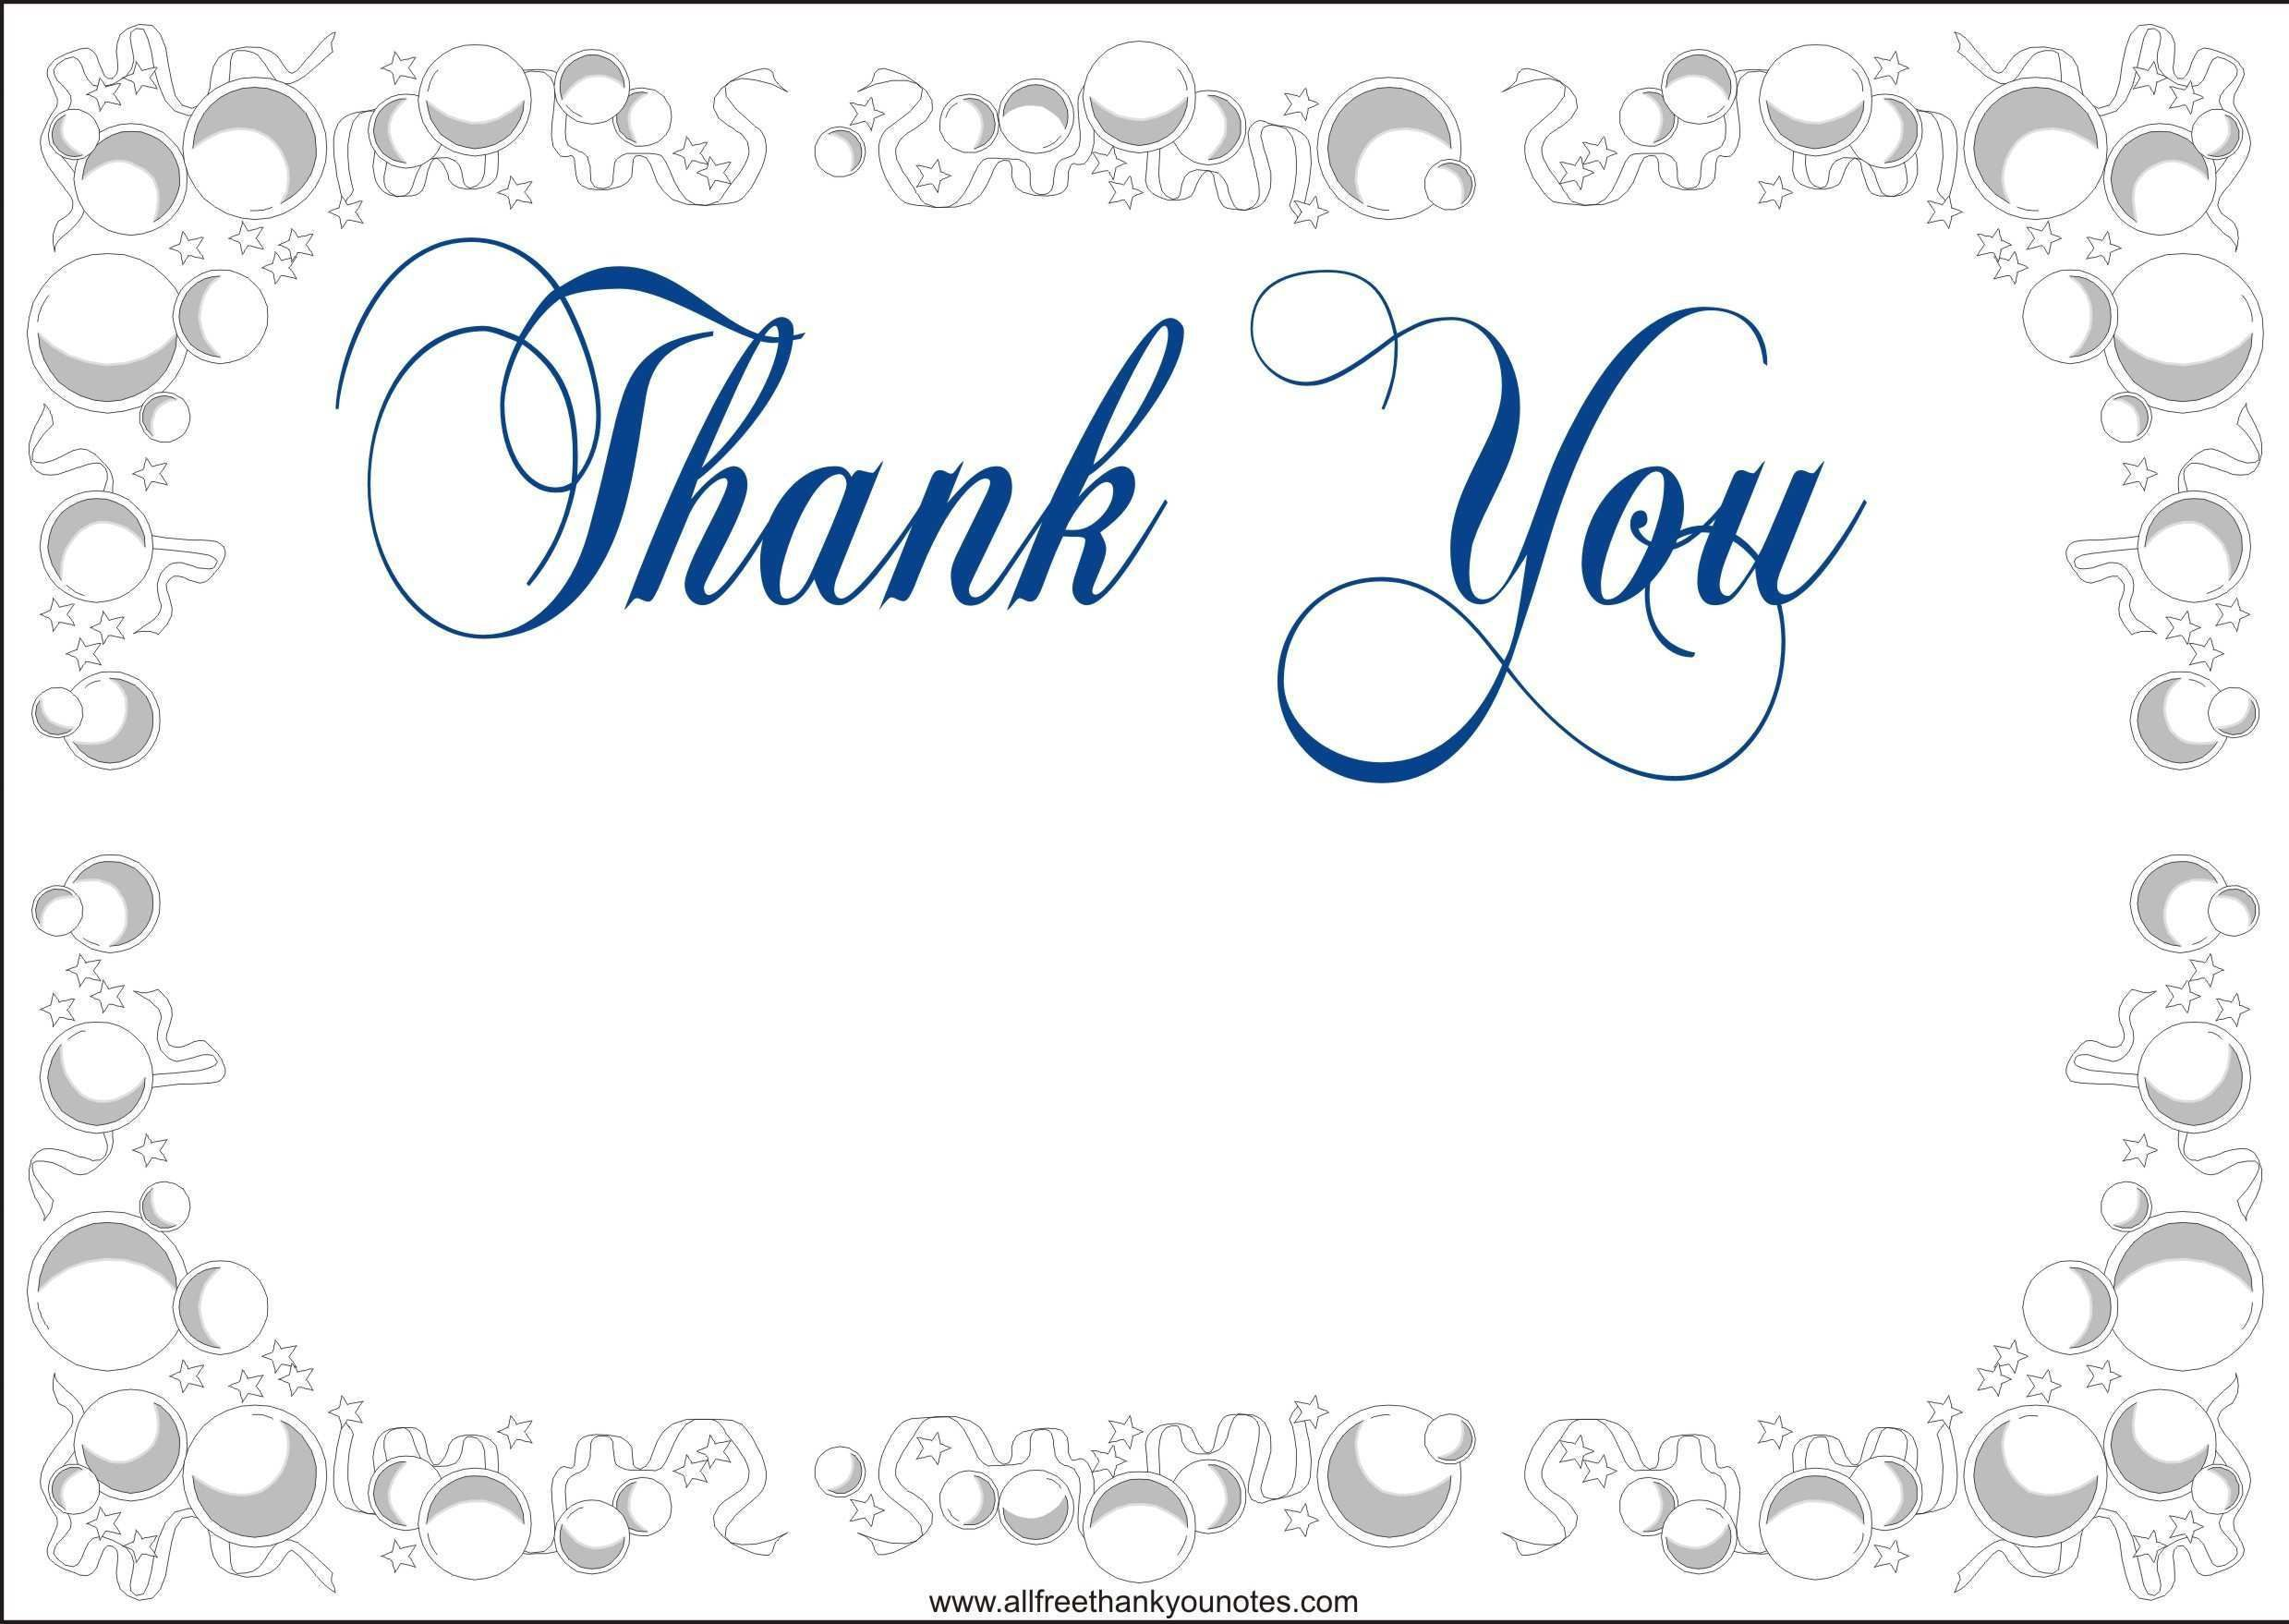 003 Awesome Thank You Card Template Sample  Wedding Busines Word FreeFull